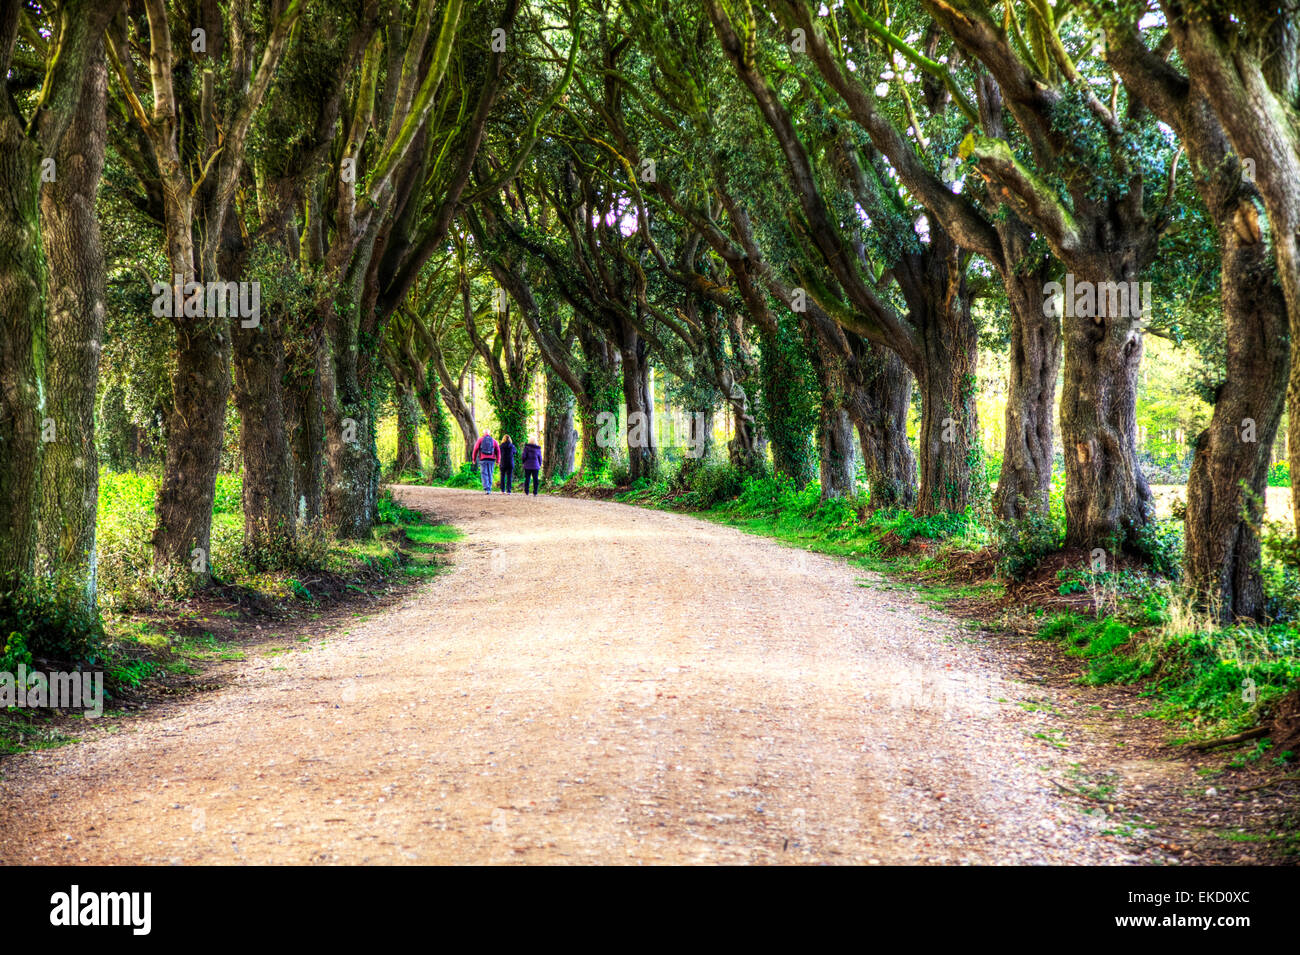 Country walk between avenue of trees ramble rambling three people walking Norwich Norfolk UK England - Stock Image